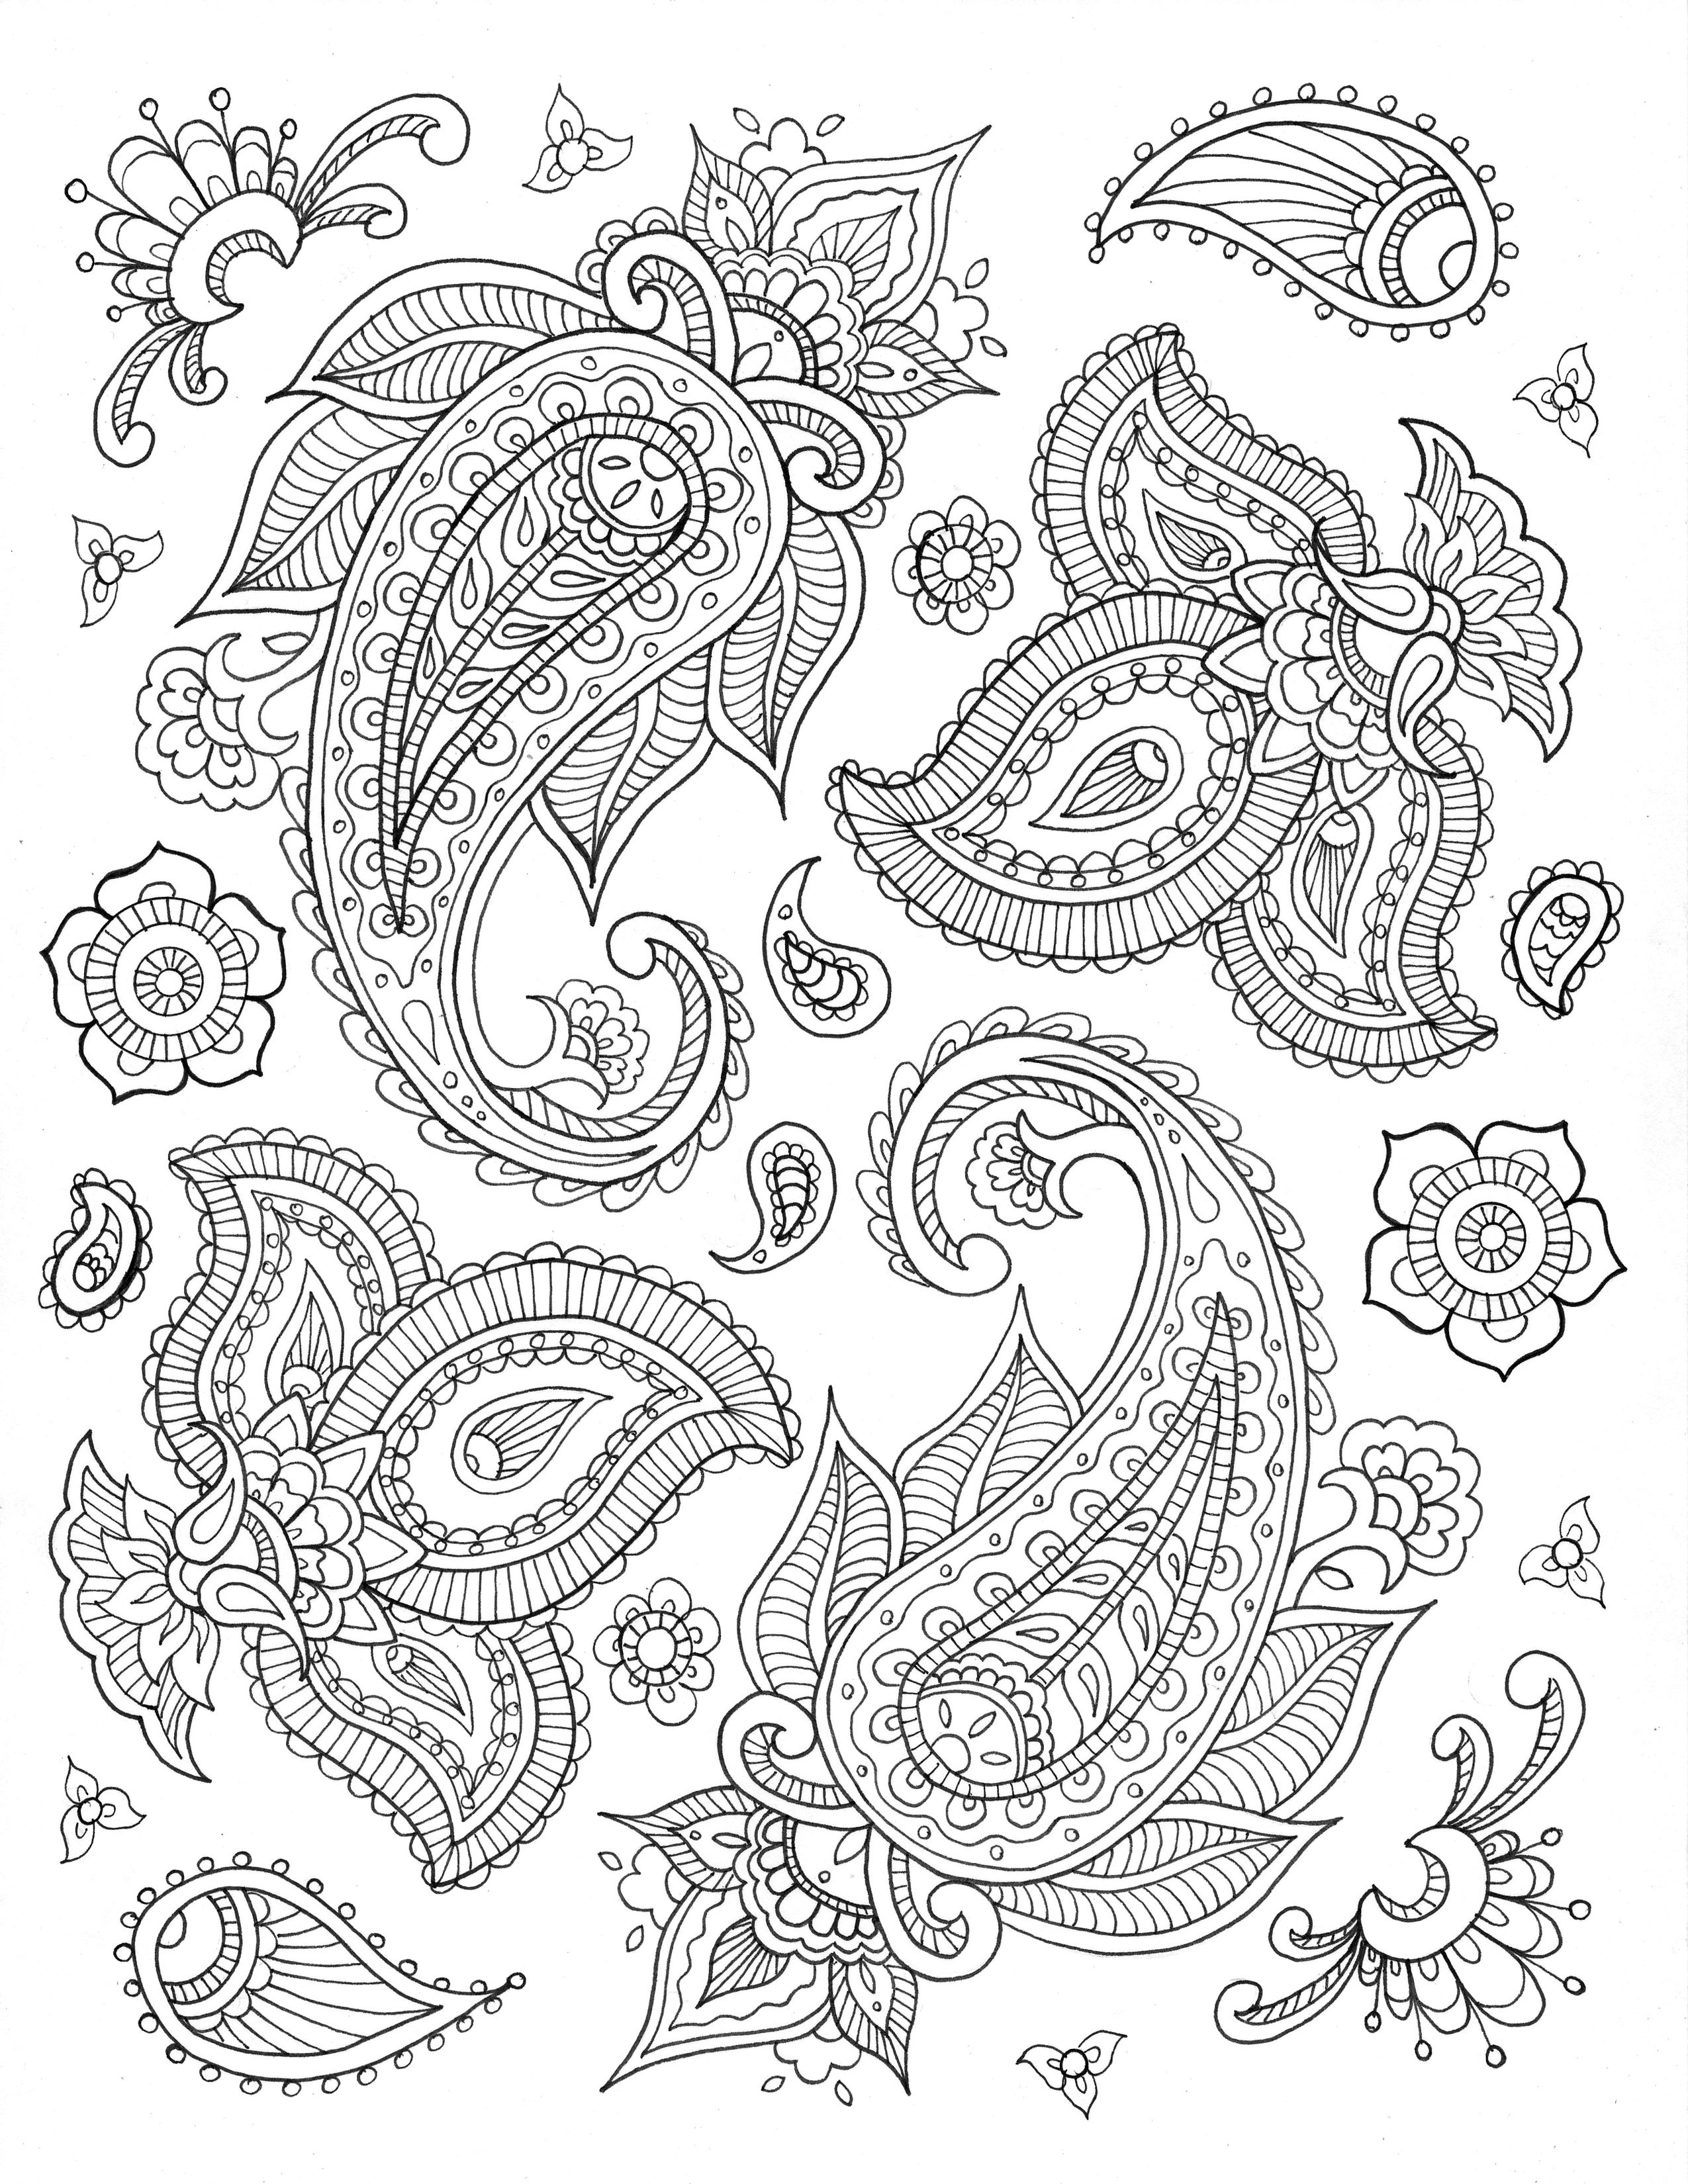 paisley print coloring pages paisley pattern coloring page free printable coloring pages paisley pages coloring print